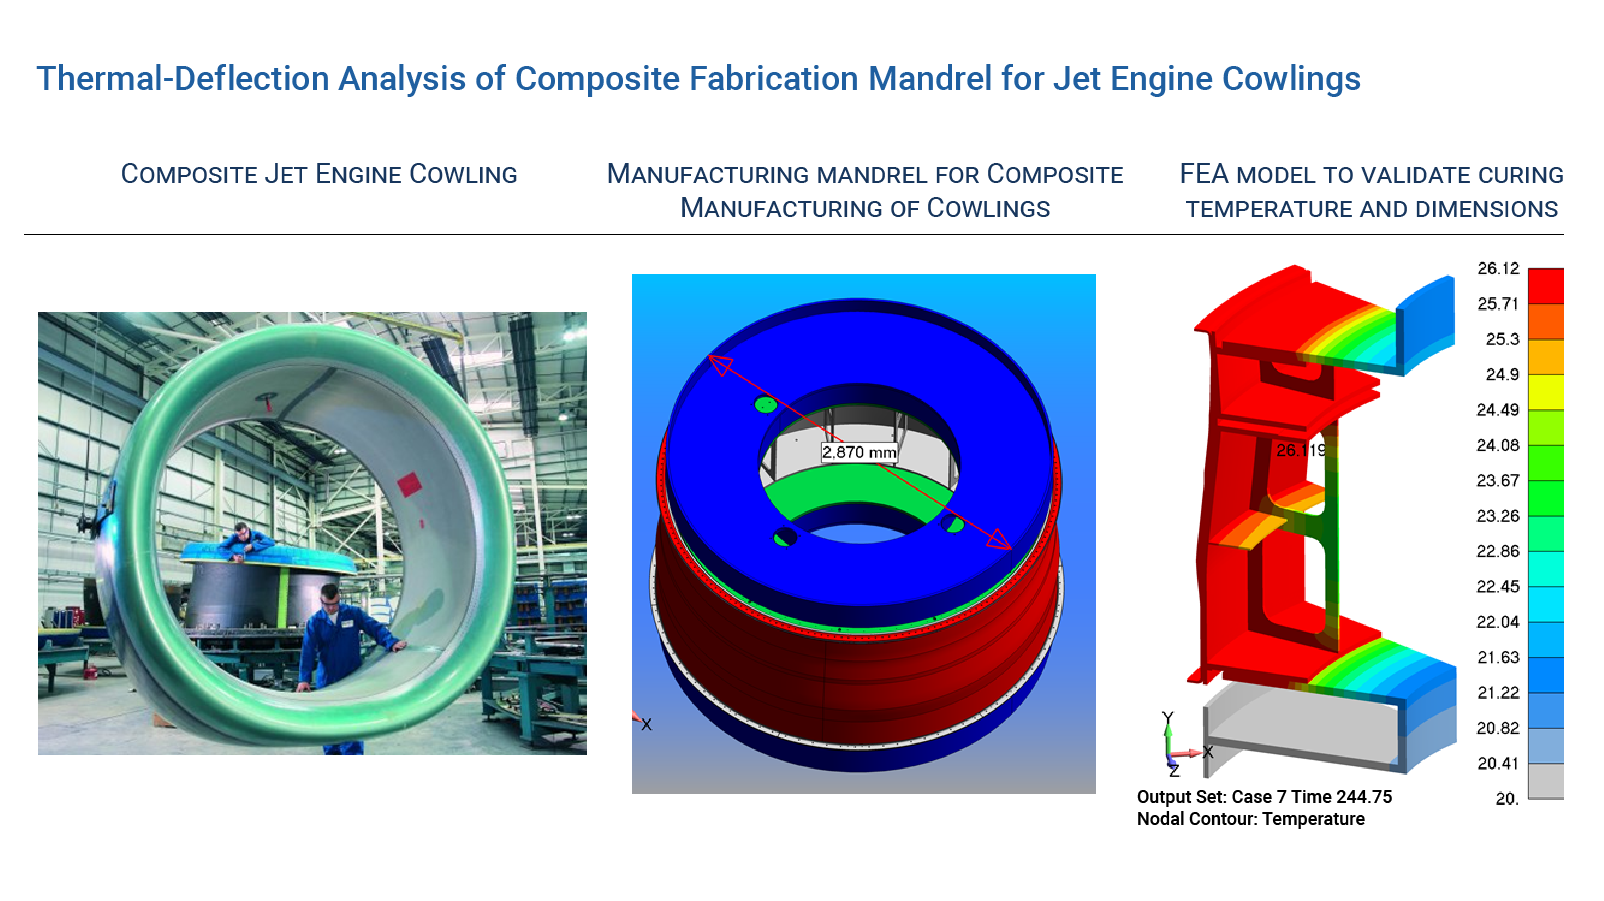 Thermal-Deflection Analysis of Composite Fabrication Mandrel for Jet Engine Cowlings